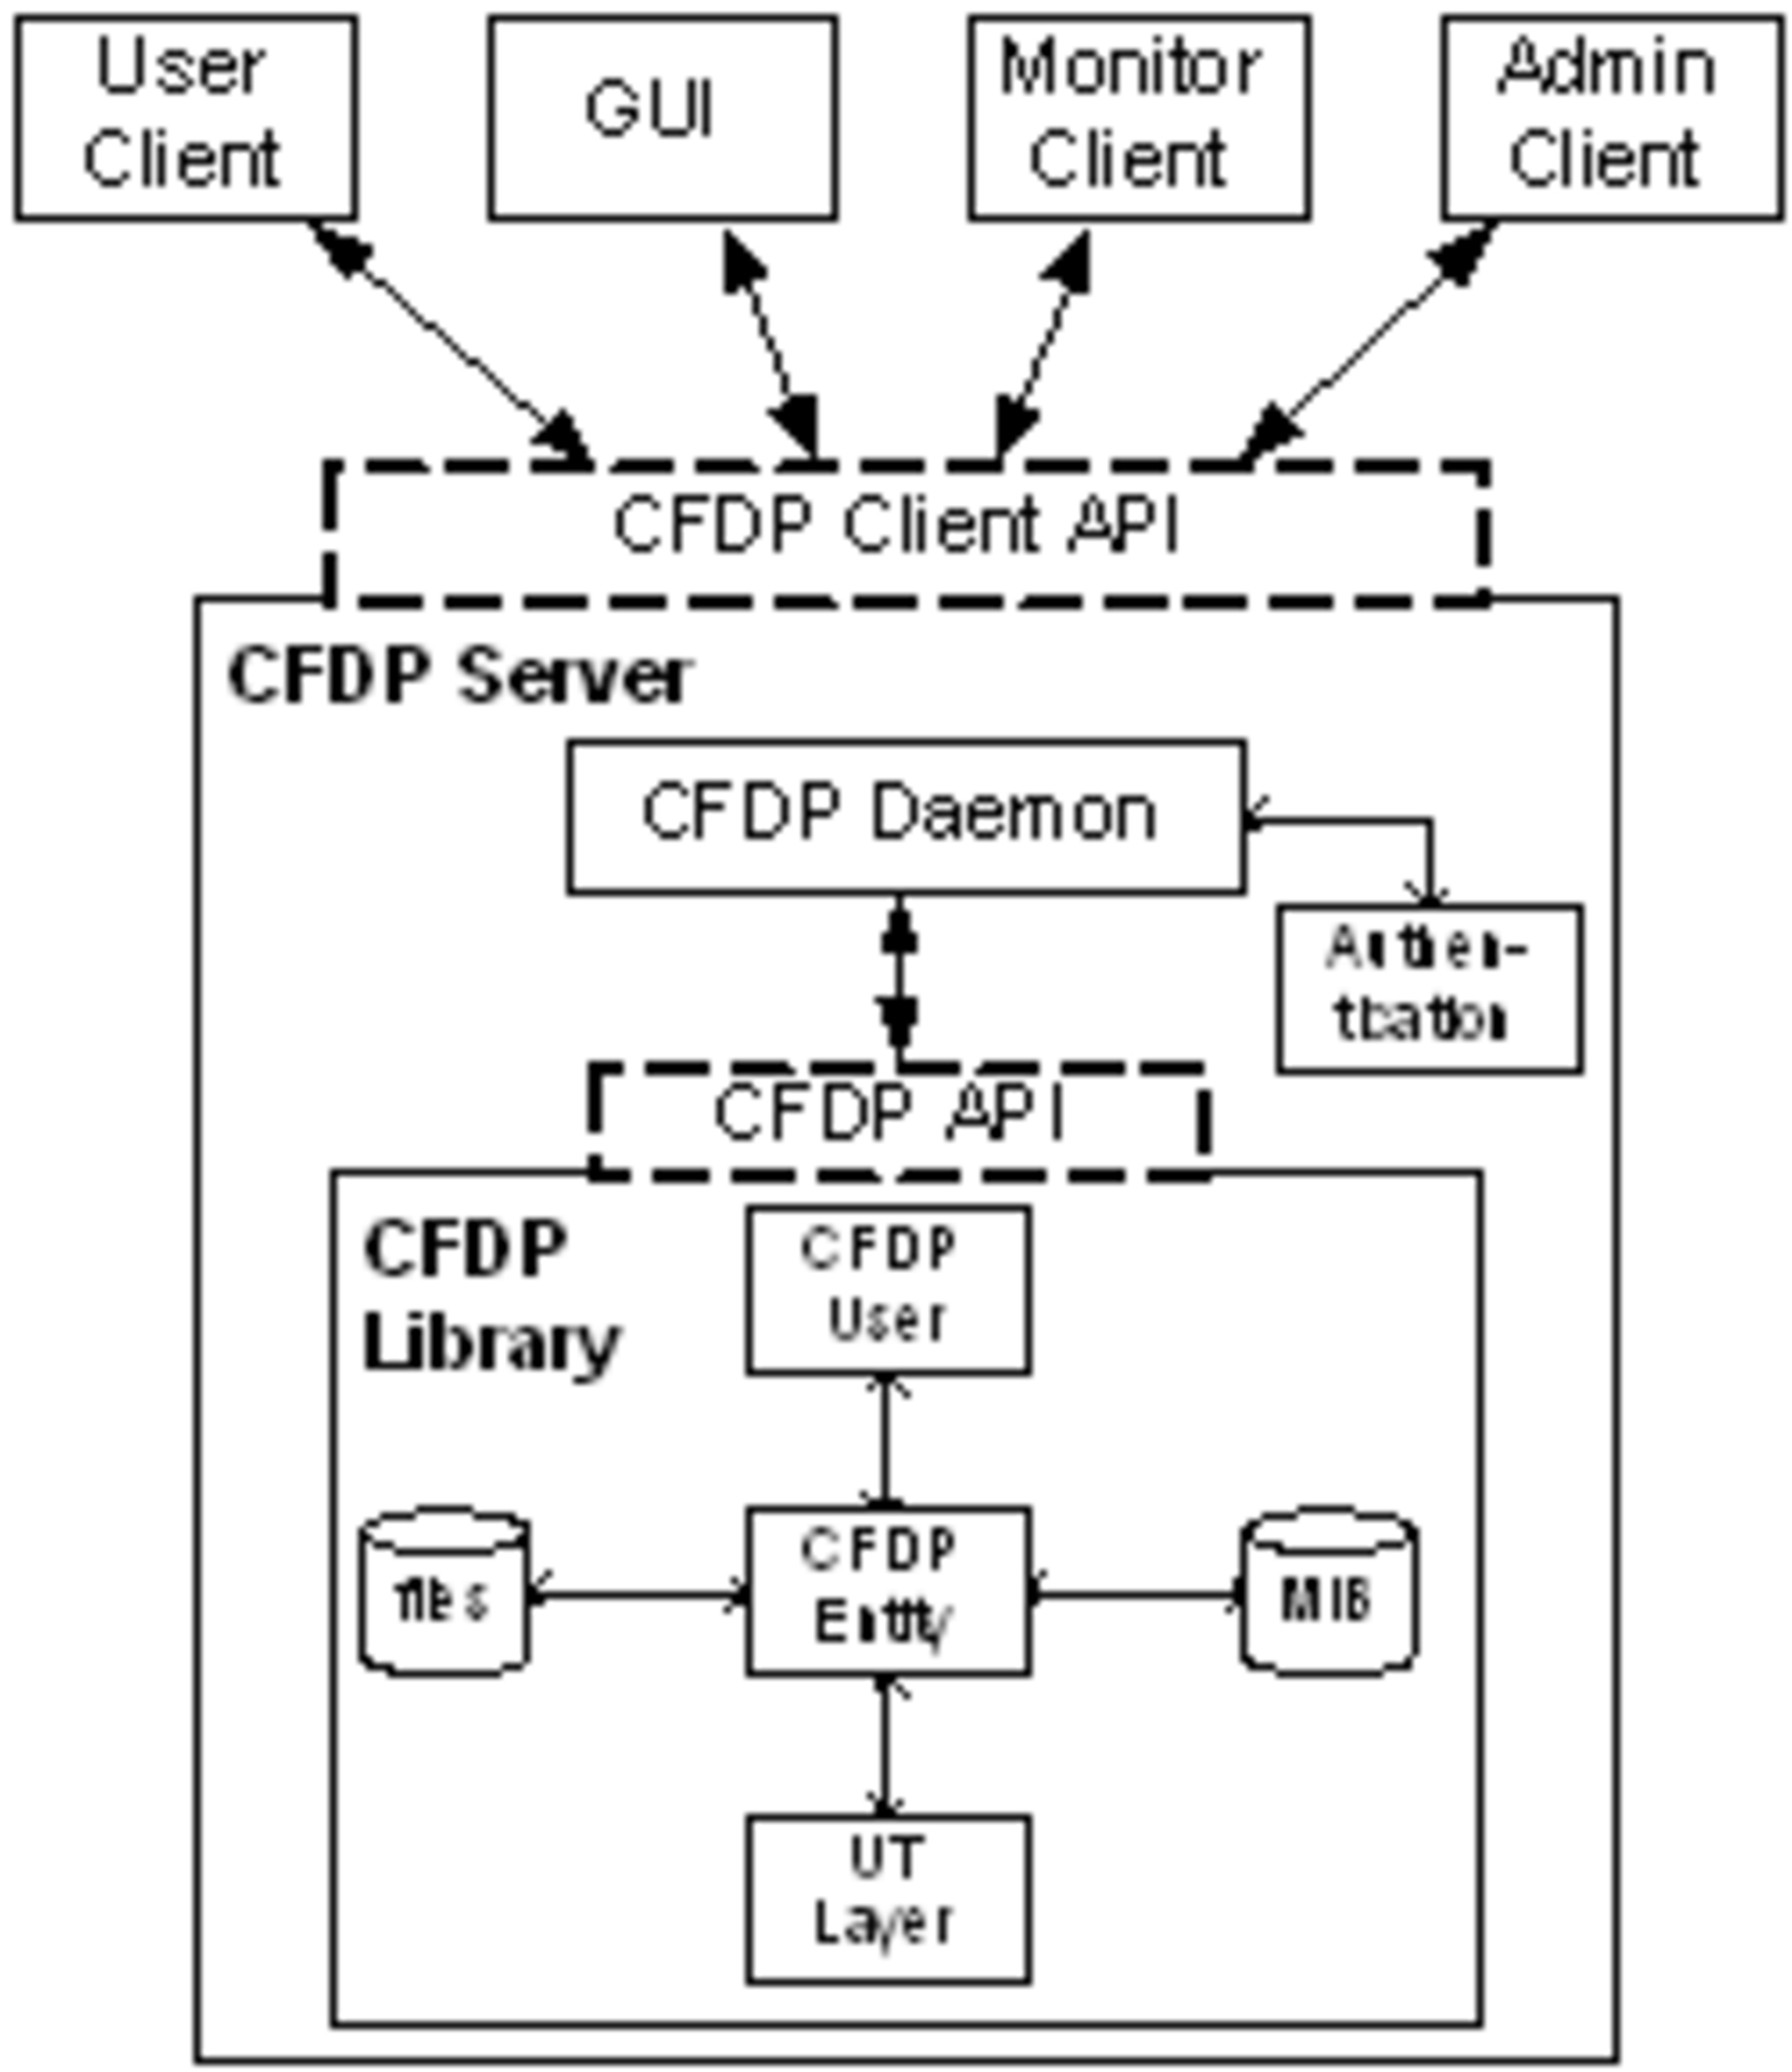 Possible deployment with several CFDP clients connecting to a CFDP server